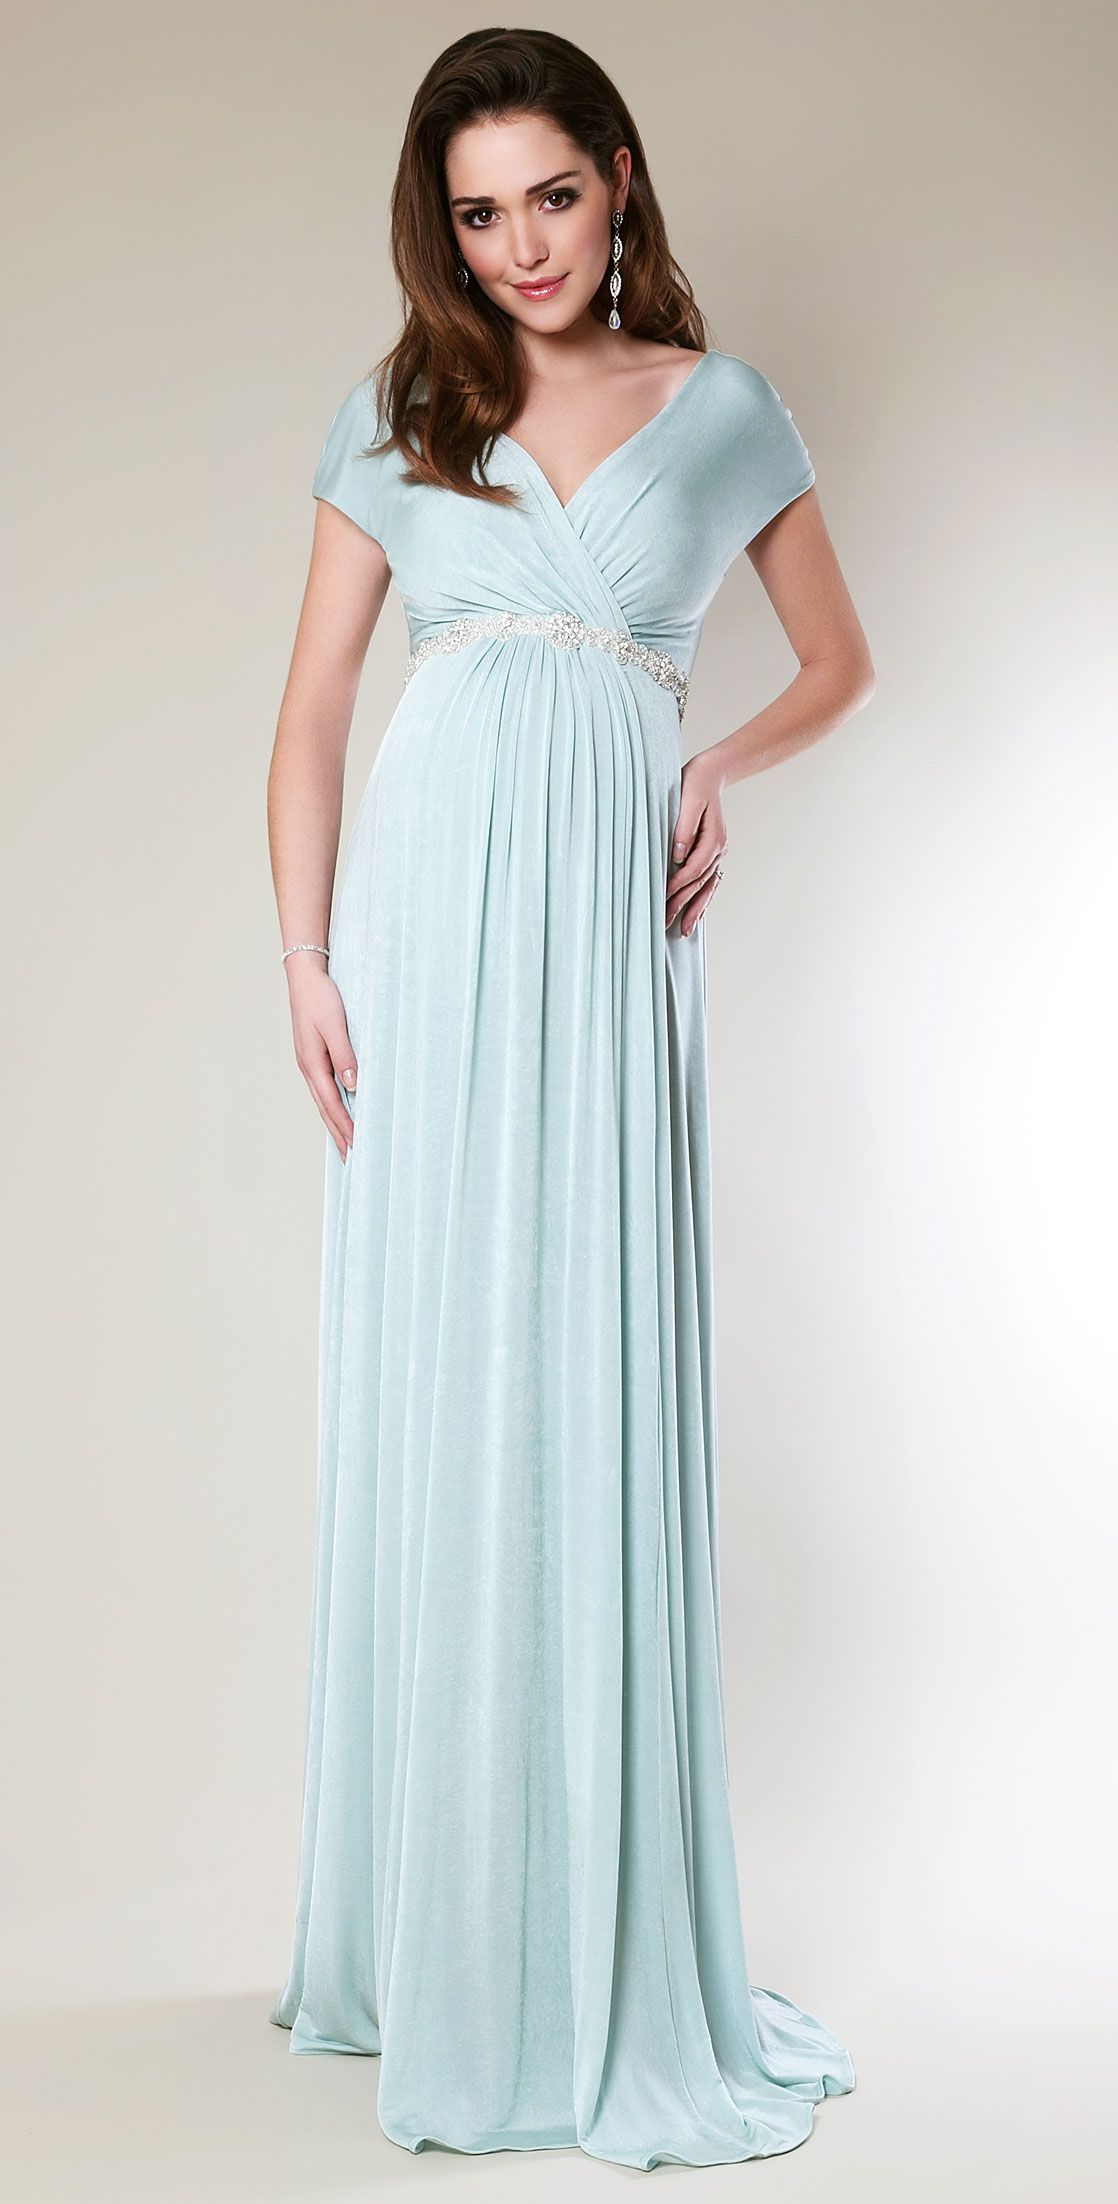 Valencia Gown Long | Maternity evening gowns, Maternity dresses ...